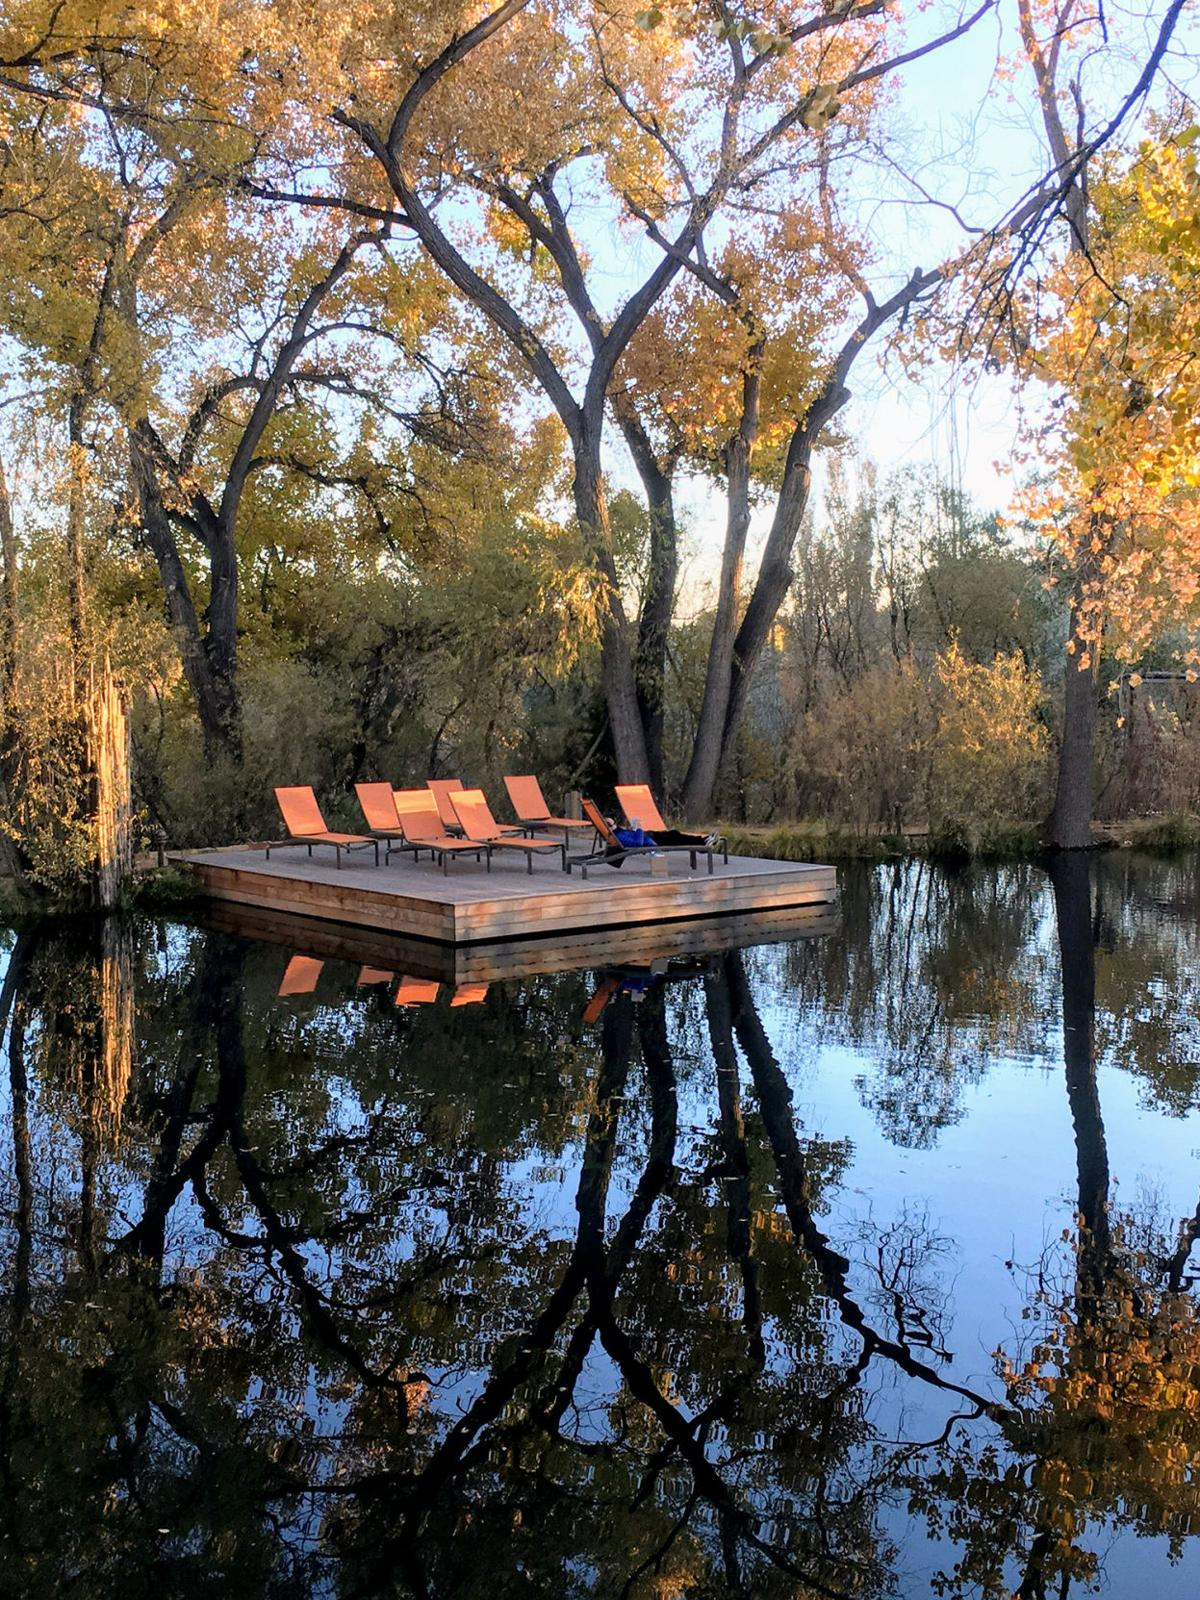 Time for quiet reading on lounge chairs near hot springs.